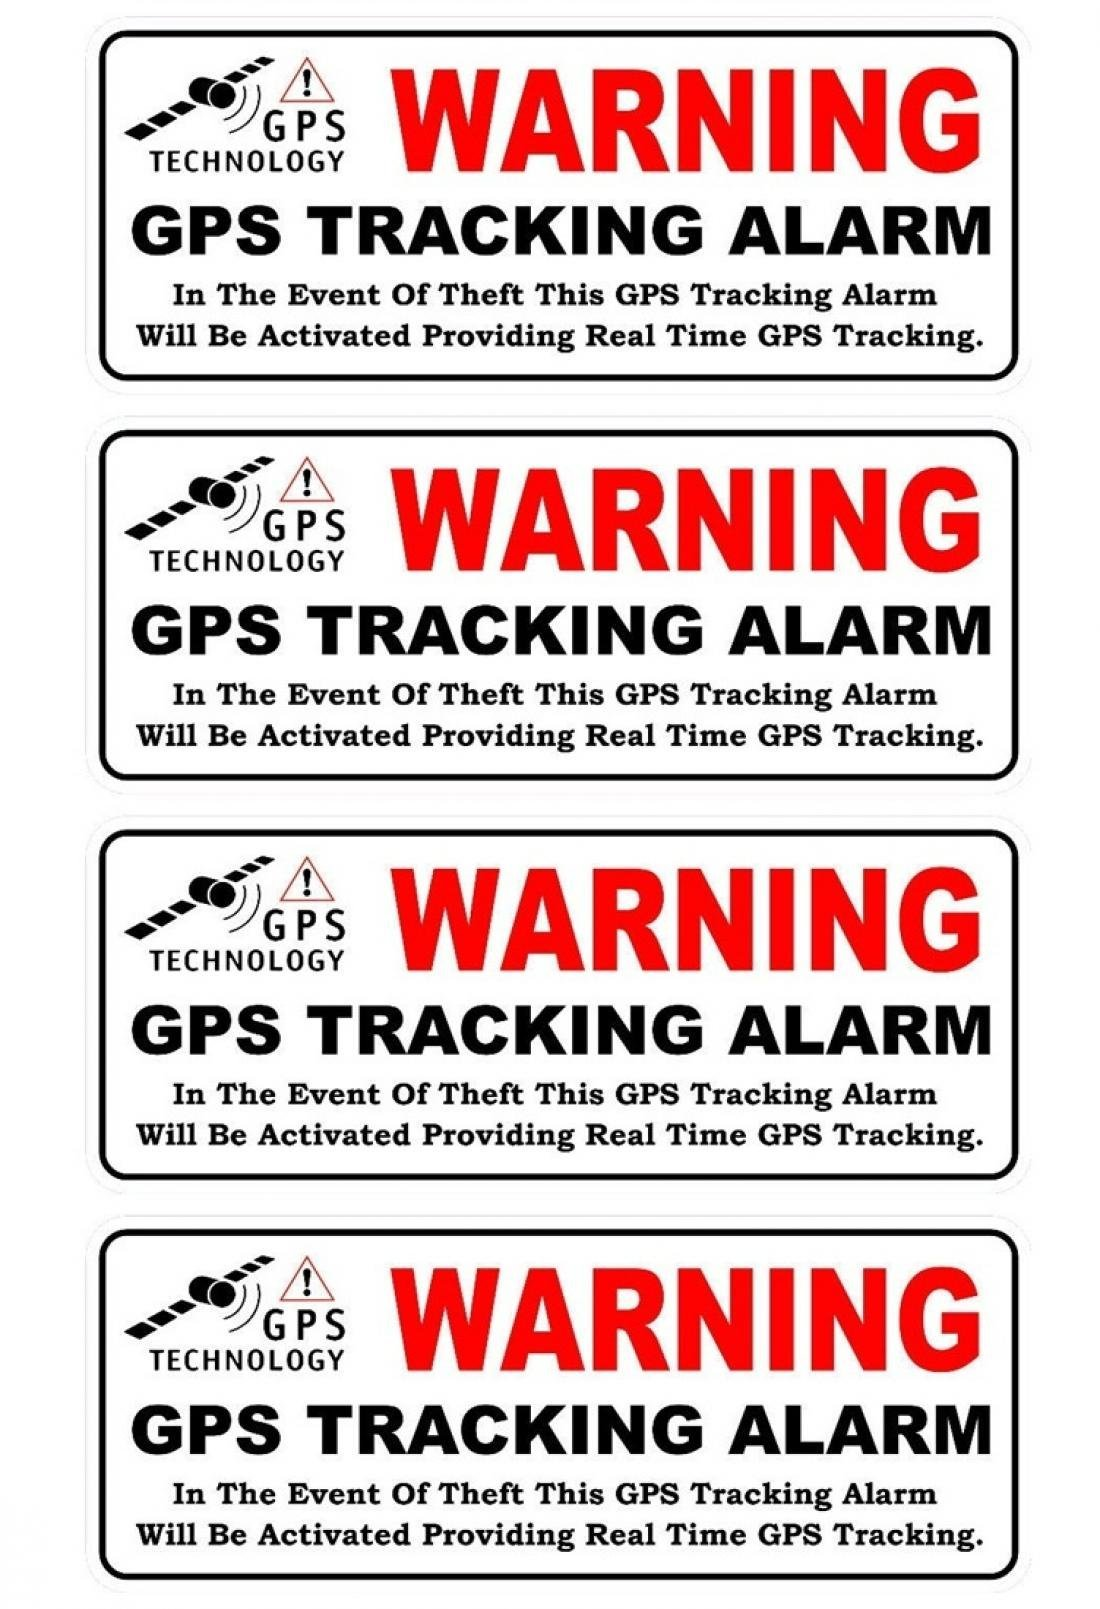 Galleon 4 pcs uppermost fashionable front adhesive warning gps tracking alarm sticker sign car decal motorcycle home size 4 5 x 1 5